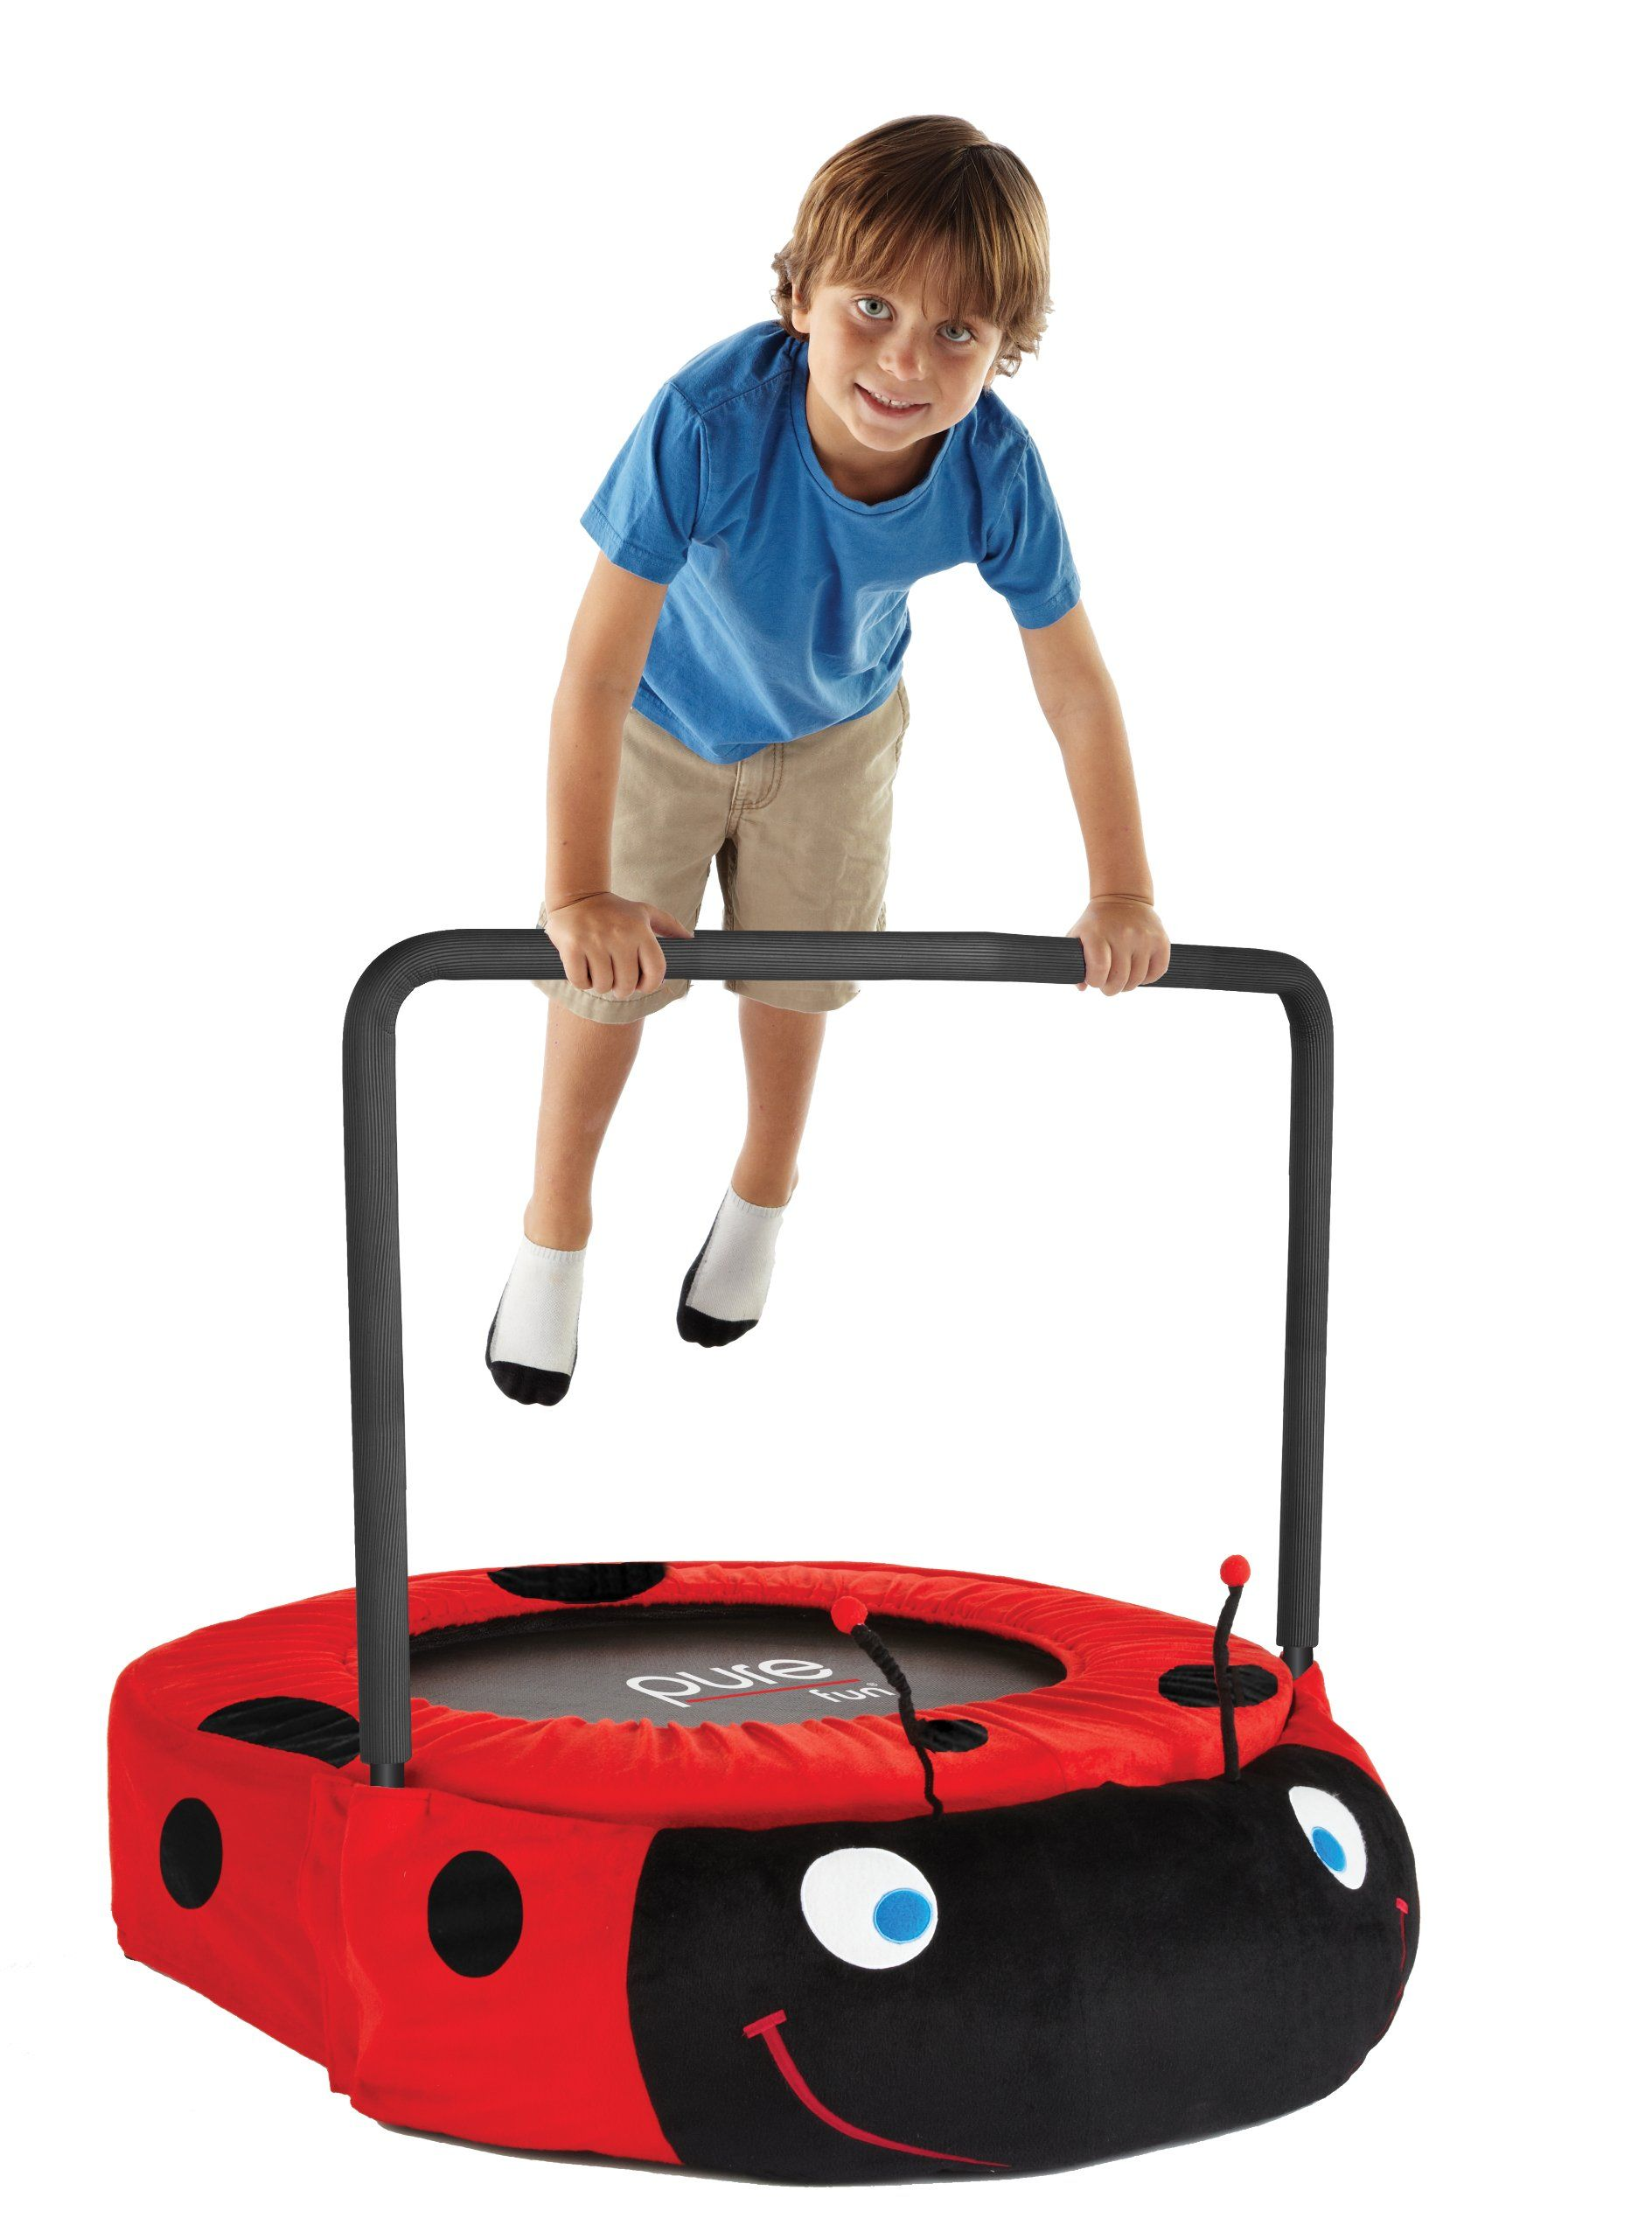 Christmas Gift Ideas For 5 Year Old Part - 22: Best Gifts And Toys For 5 Year Old Boys